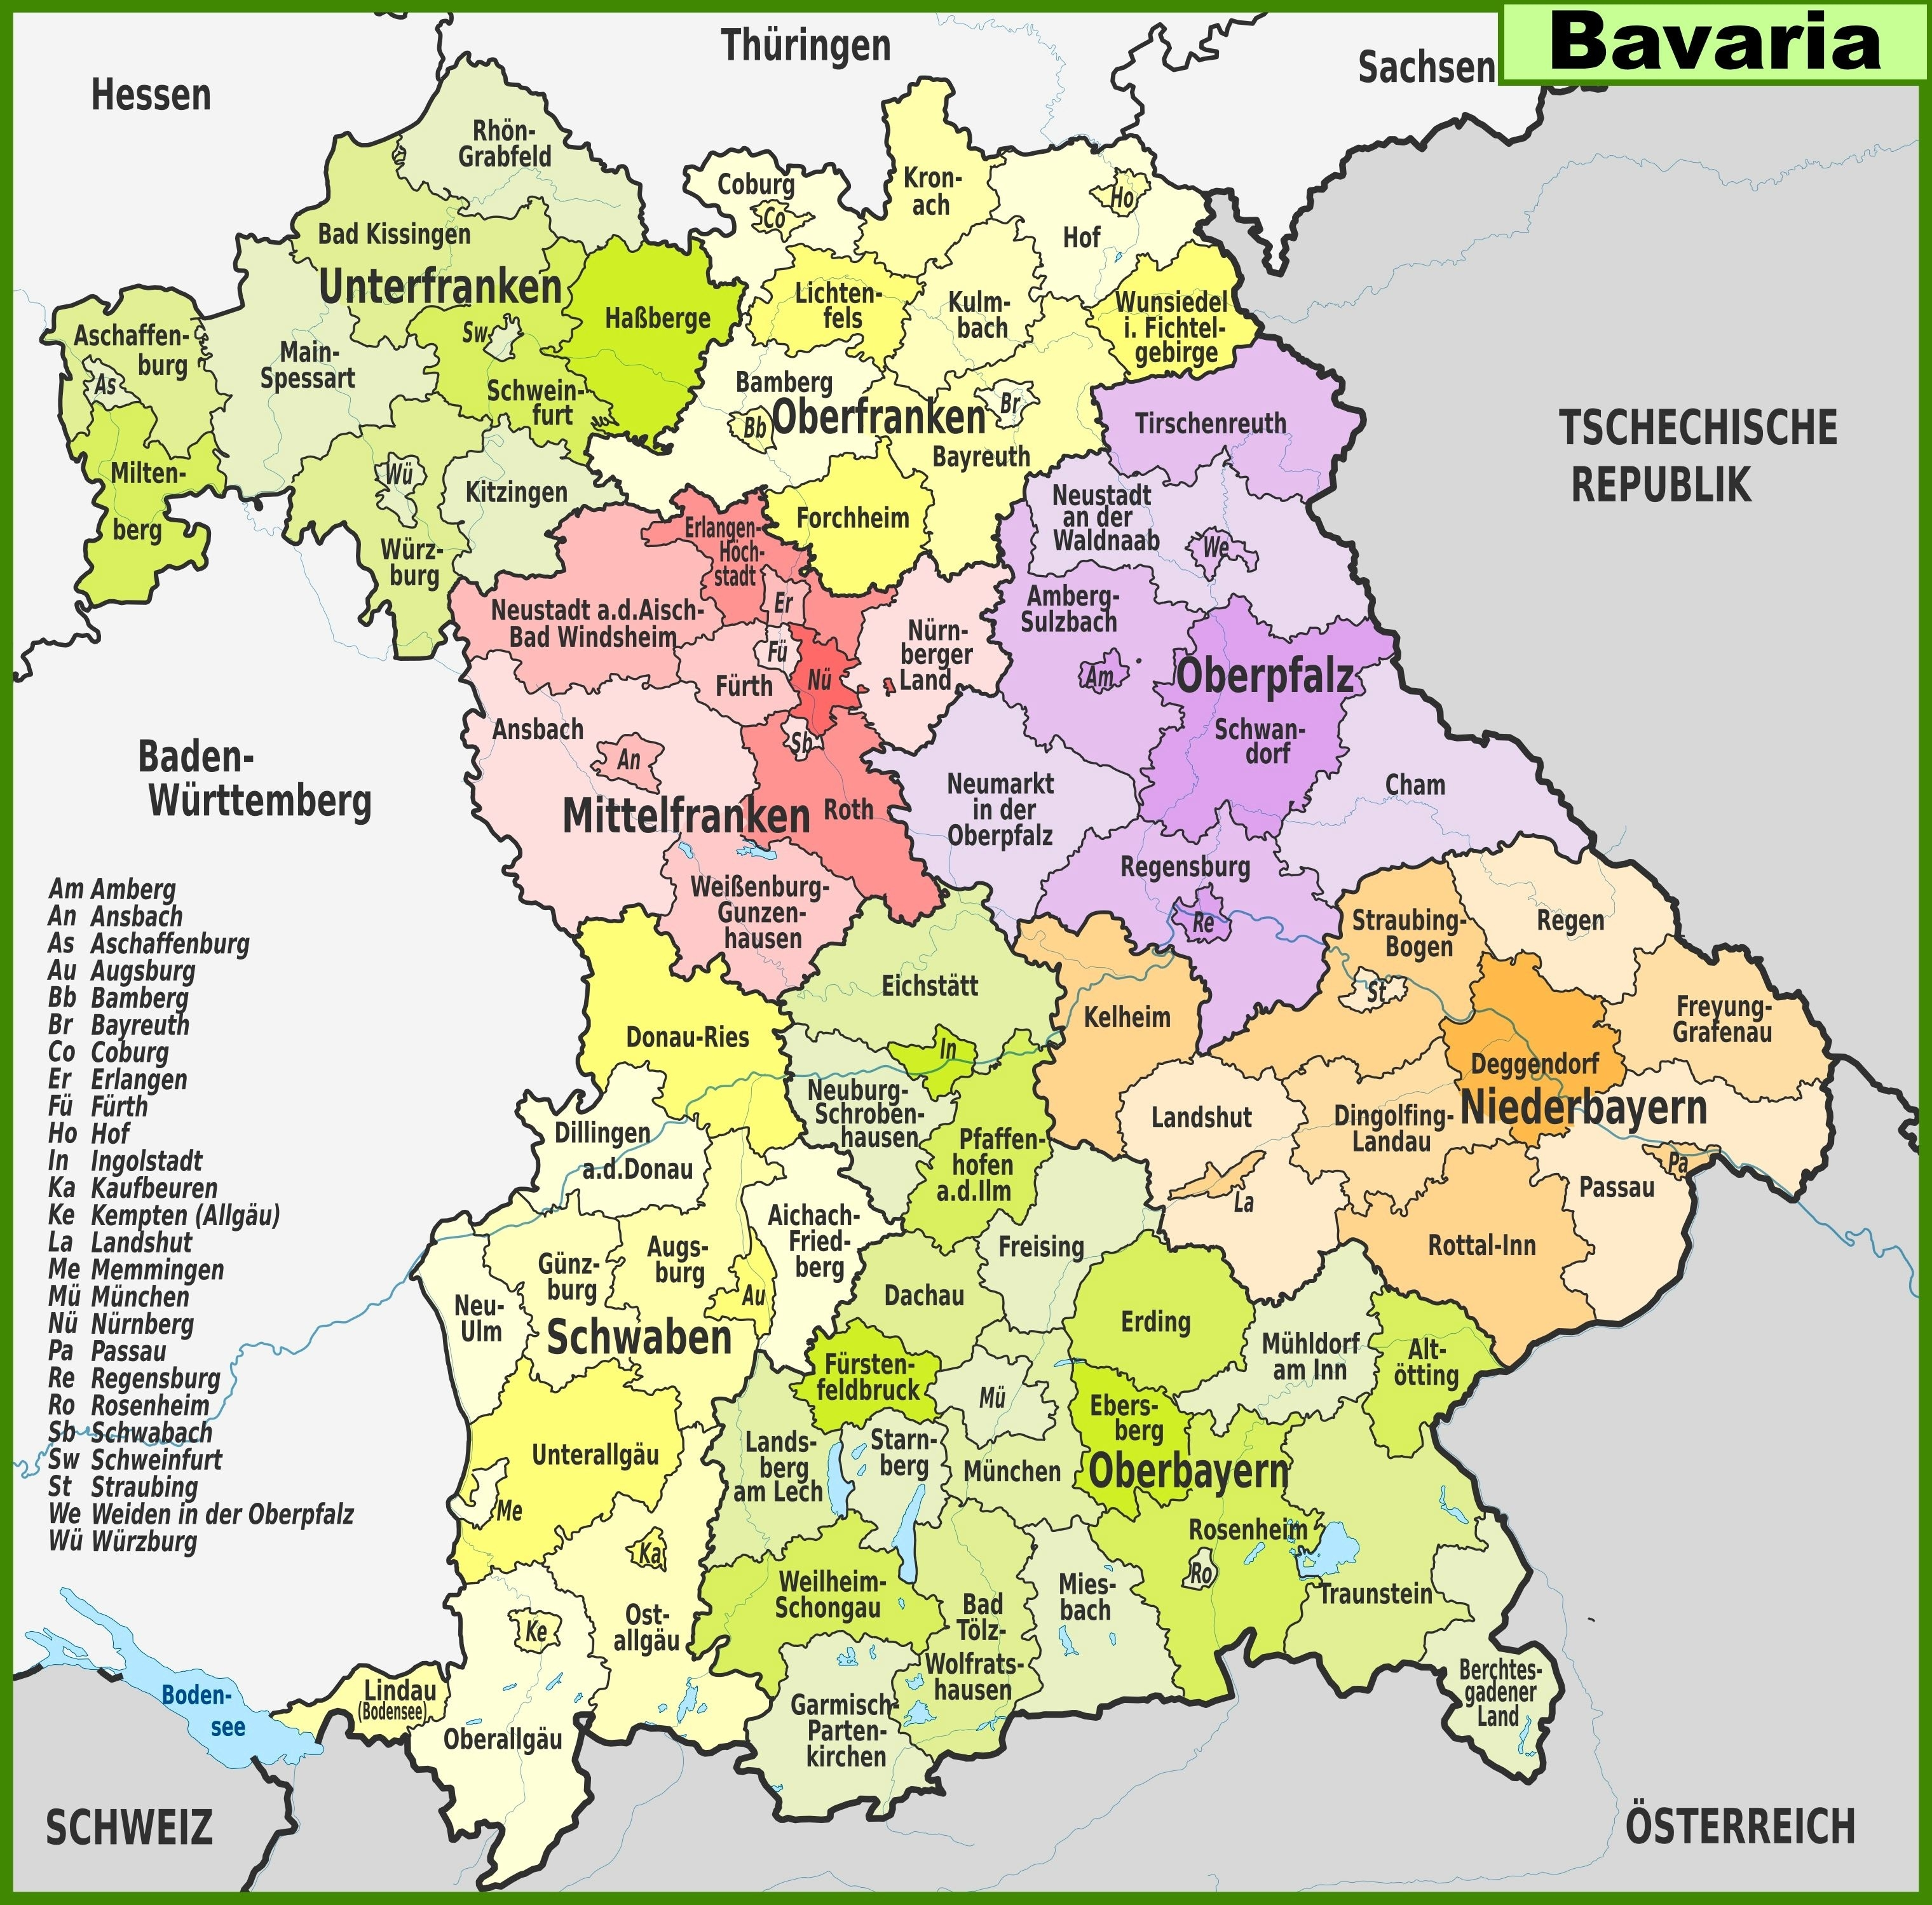 Large Bavaria Maps For Free Download And Print   High-Resolution And with regard to German Rail Map Bavaria